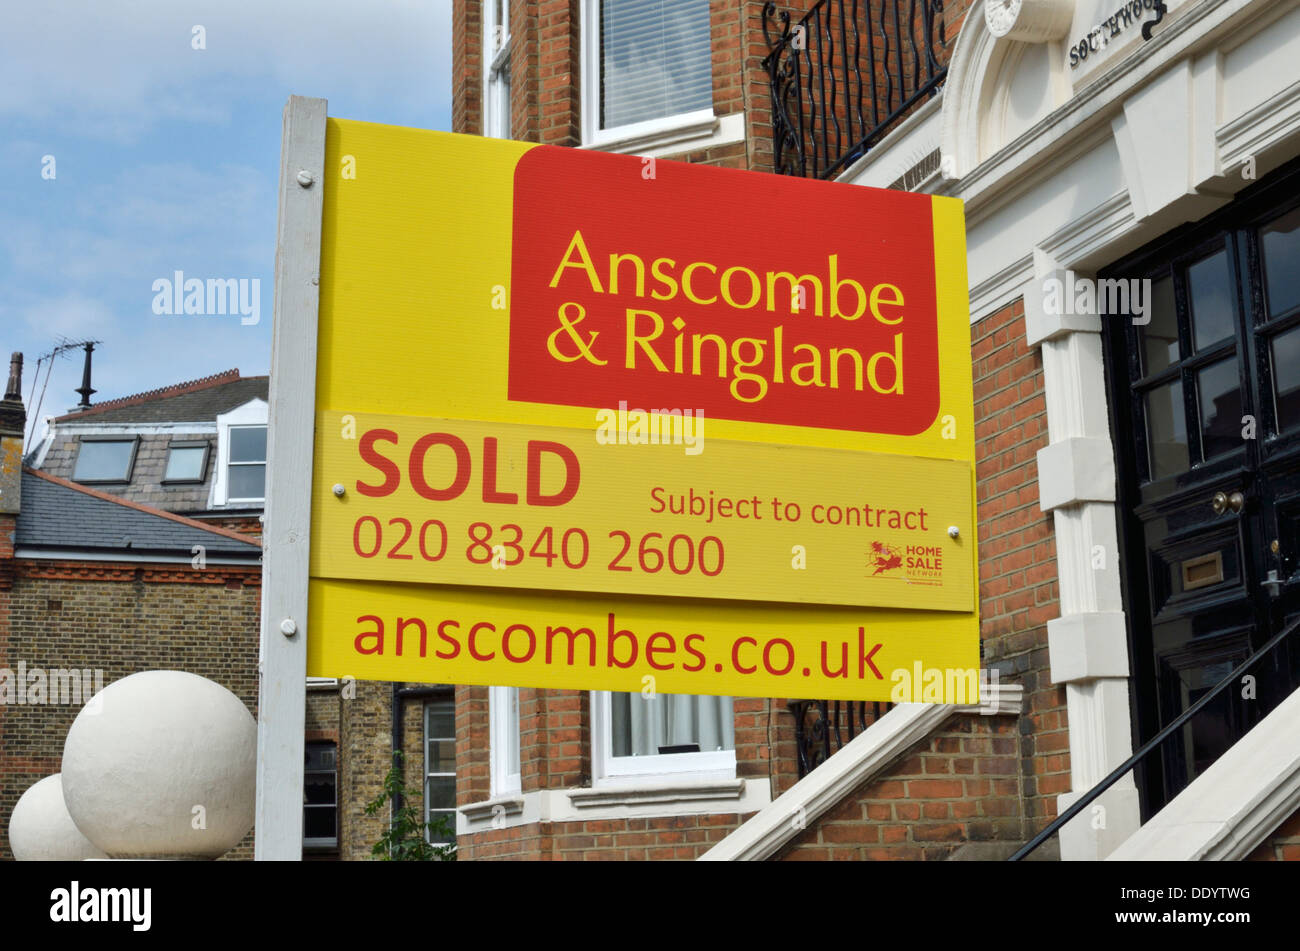 Ansscombe and Ringland 'Sold' estate agent sign outside a house in Highgate, London, UK. - Stock Image